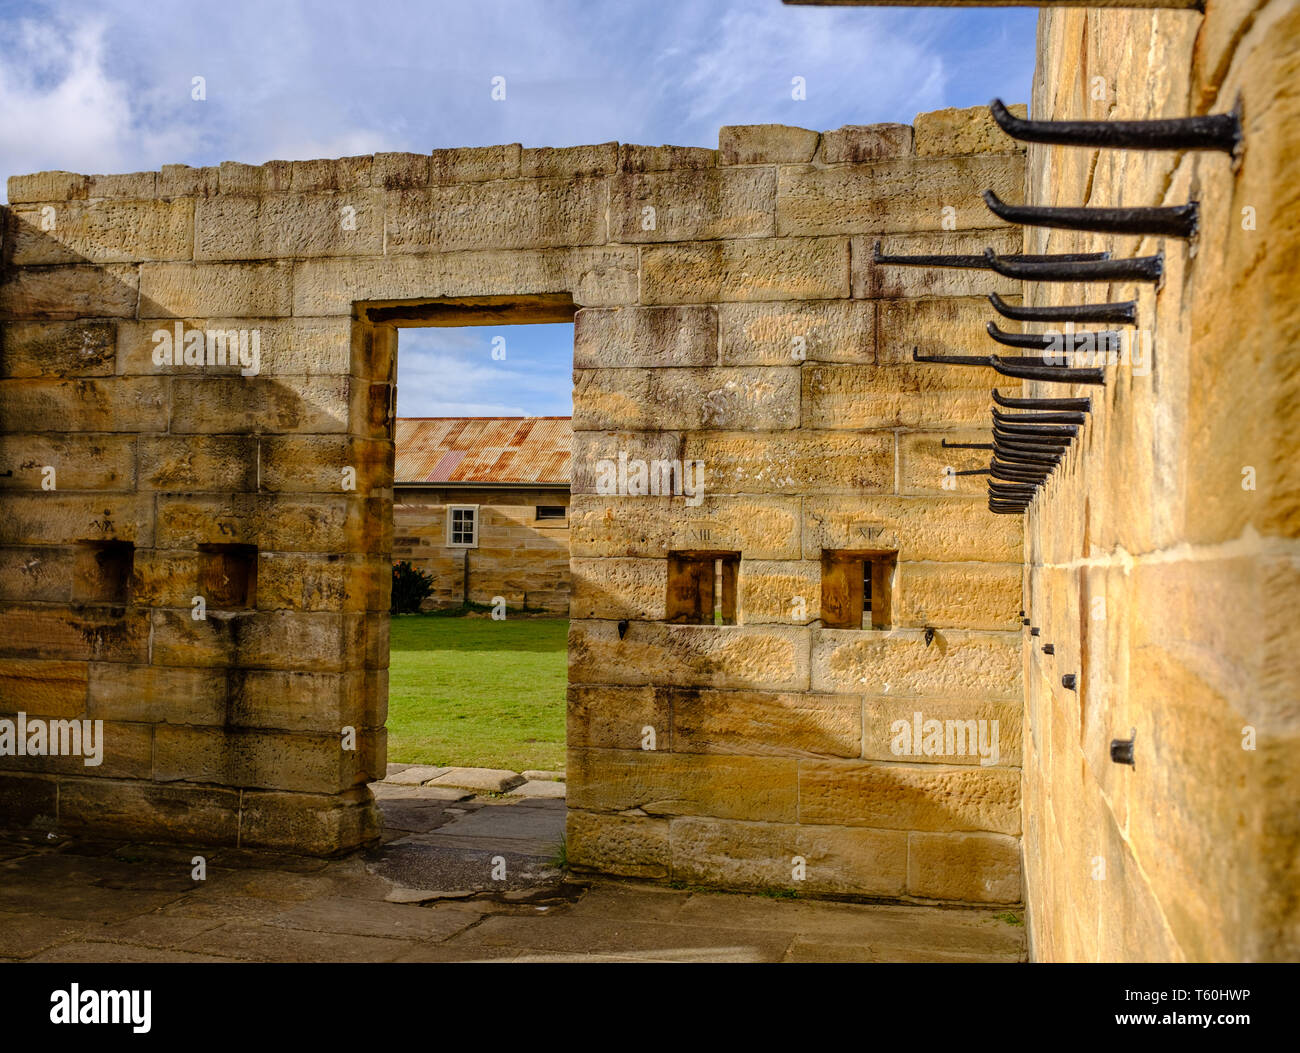 Cockatoo island Sydney, Australia, Historical stone prison building built by convicts for solitary confinement of prisoners in 1800s - Stock Image